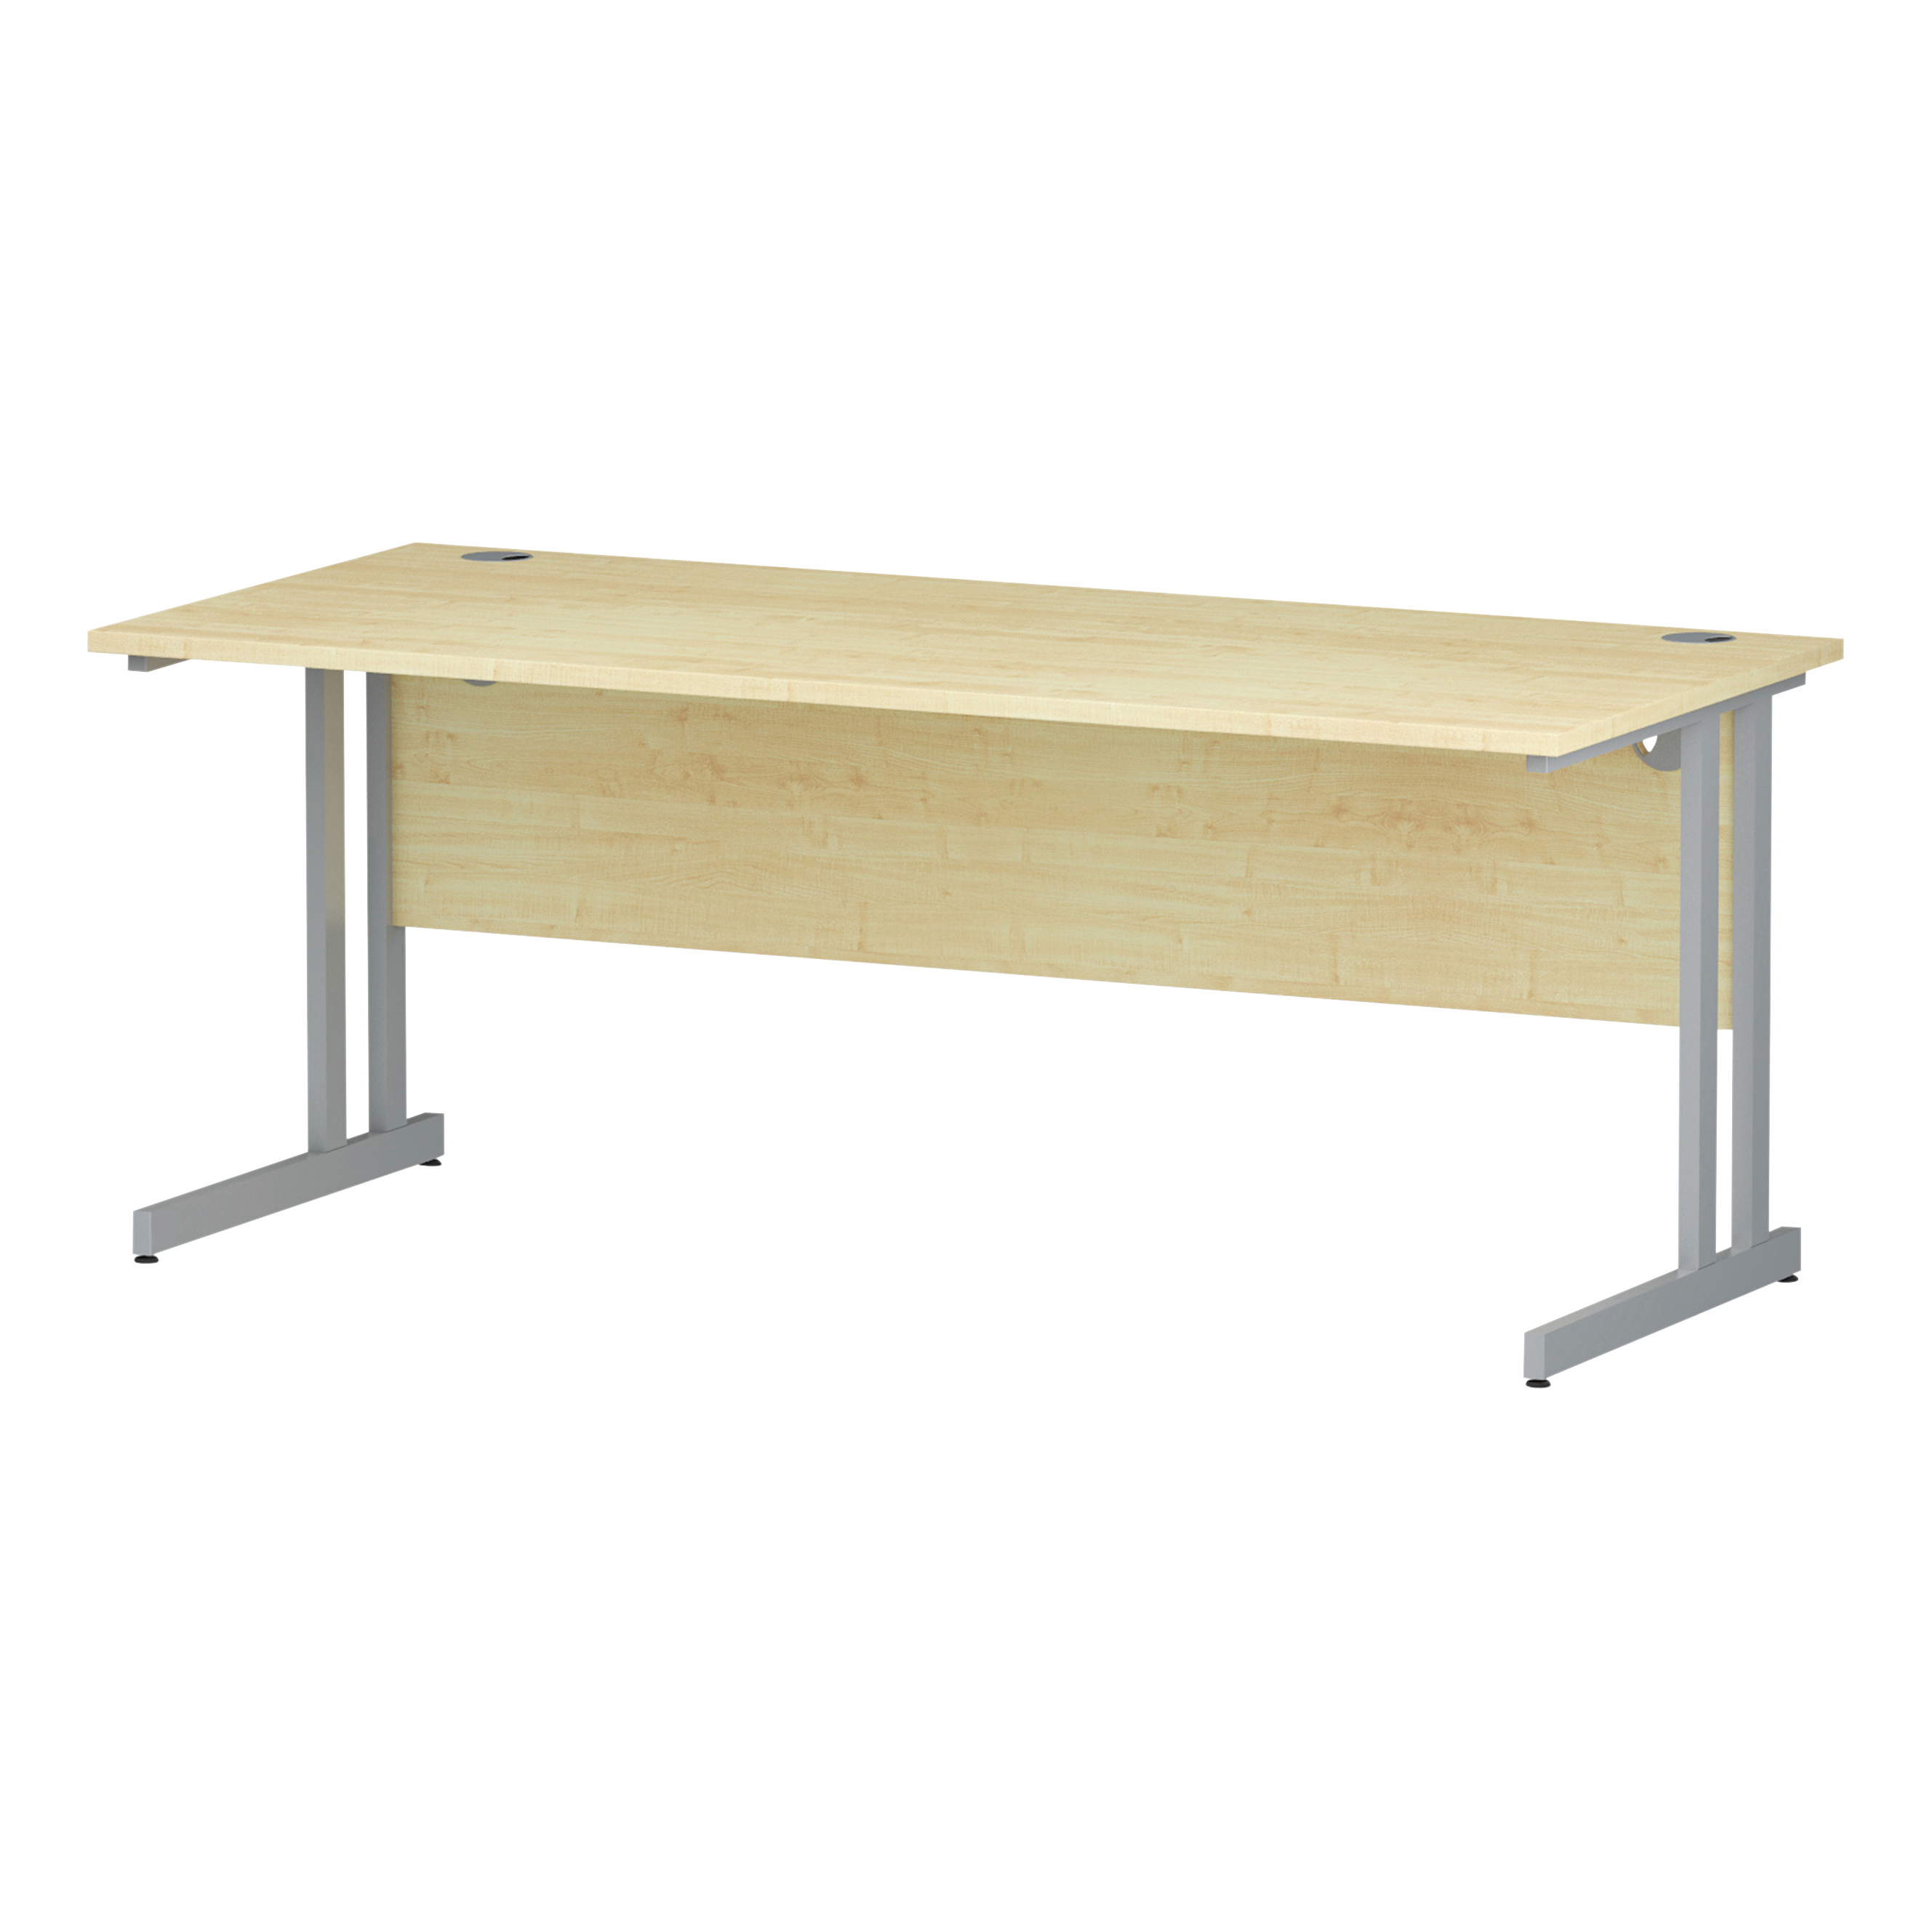 Trexus Rectangular Desk Silver Cantilever Leg 1800x800mm Maple Ref I000352